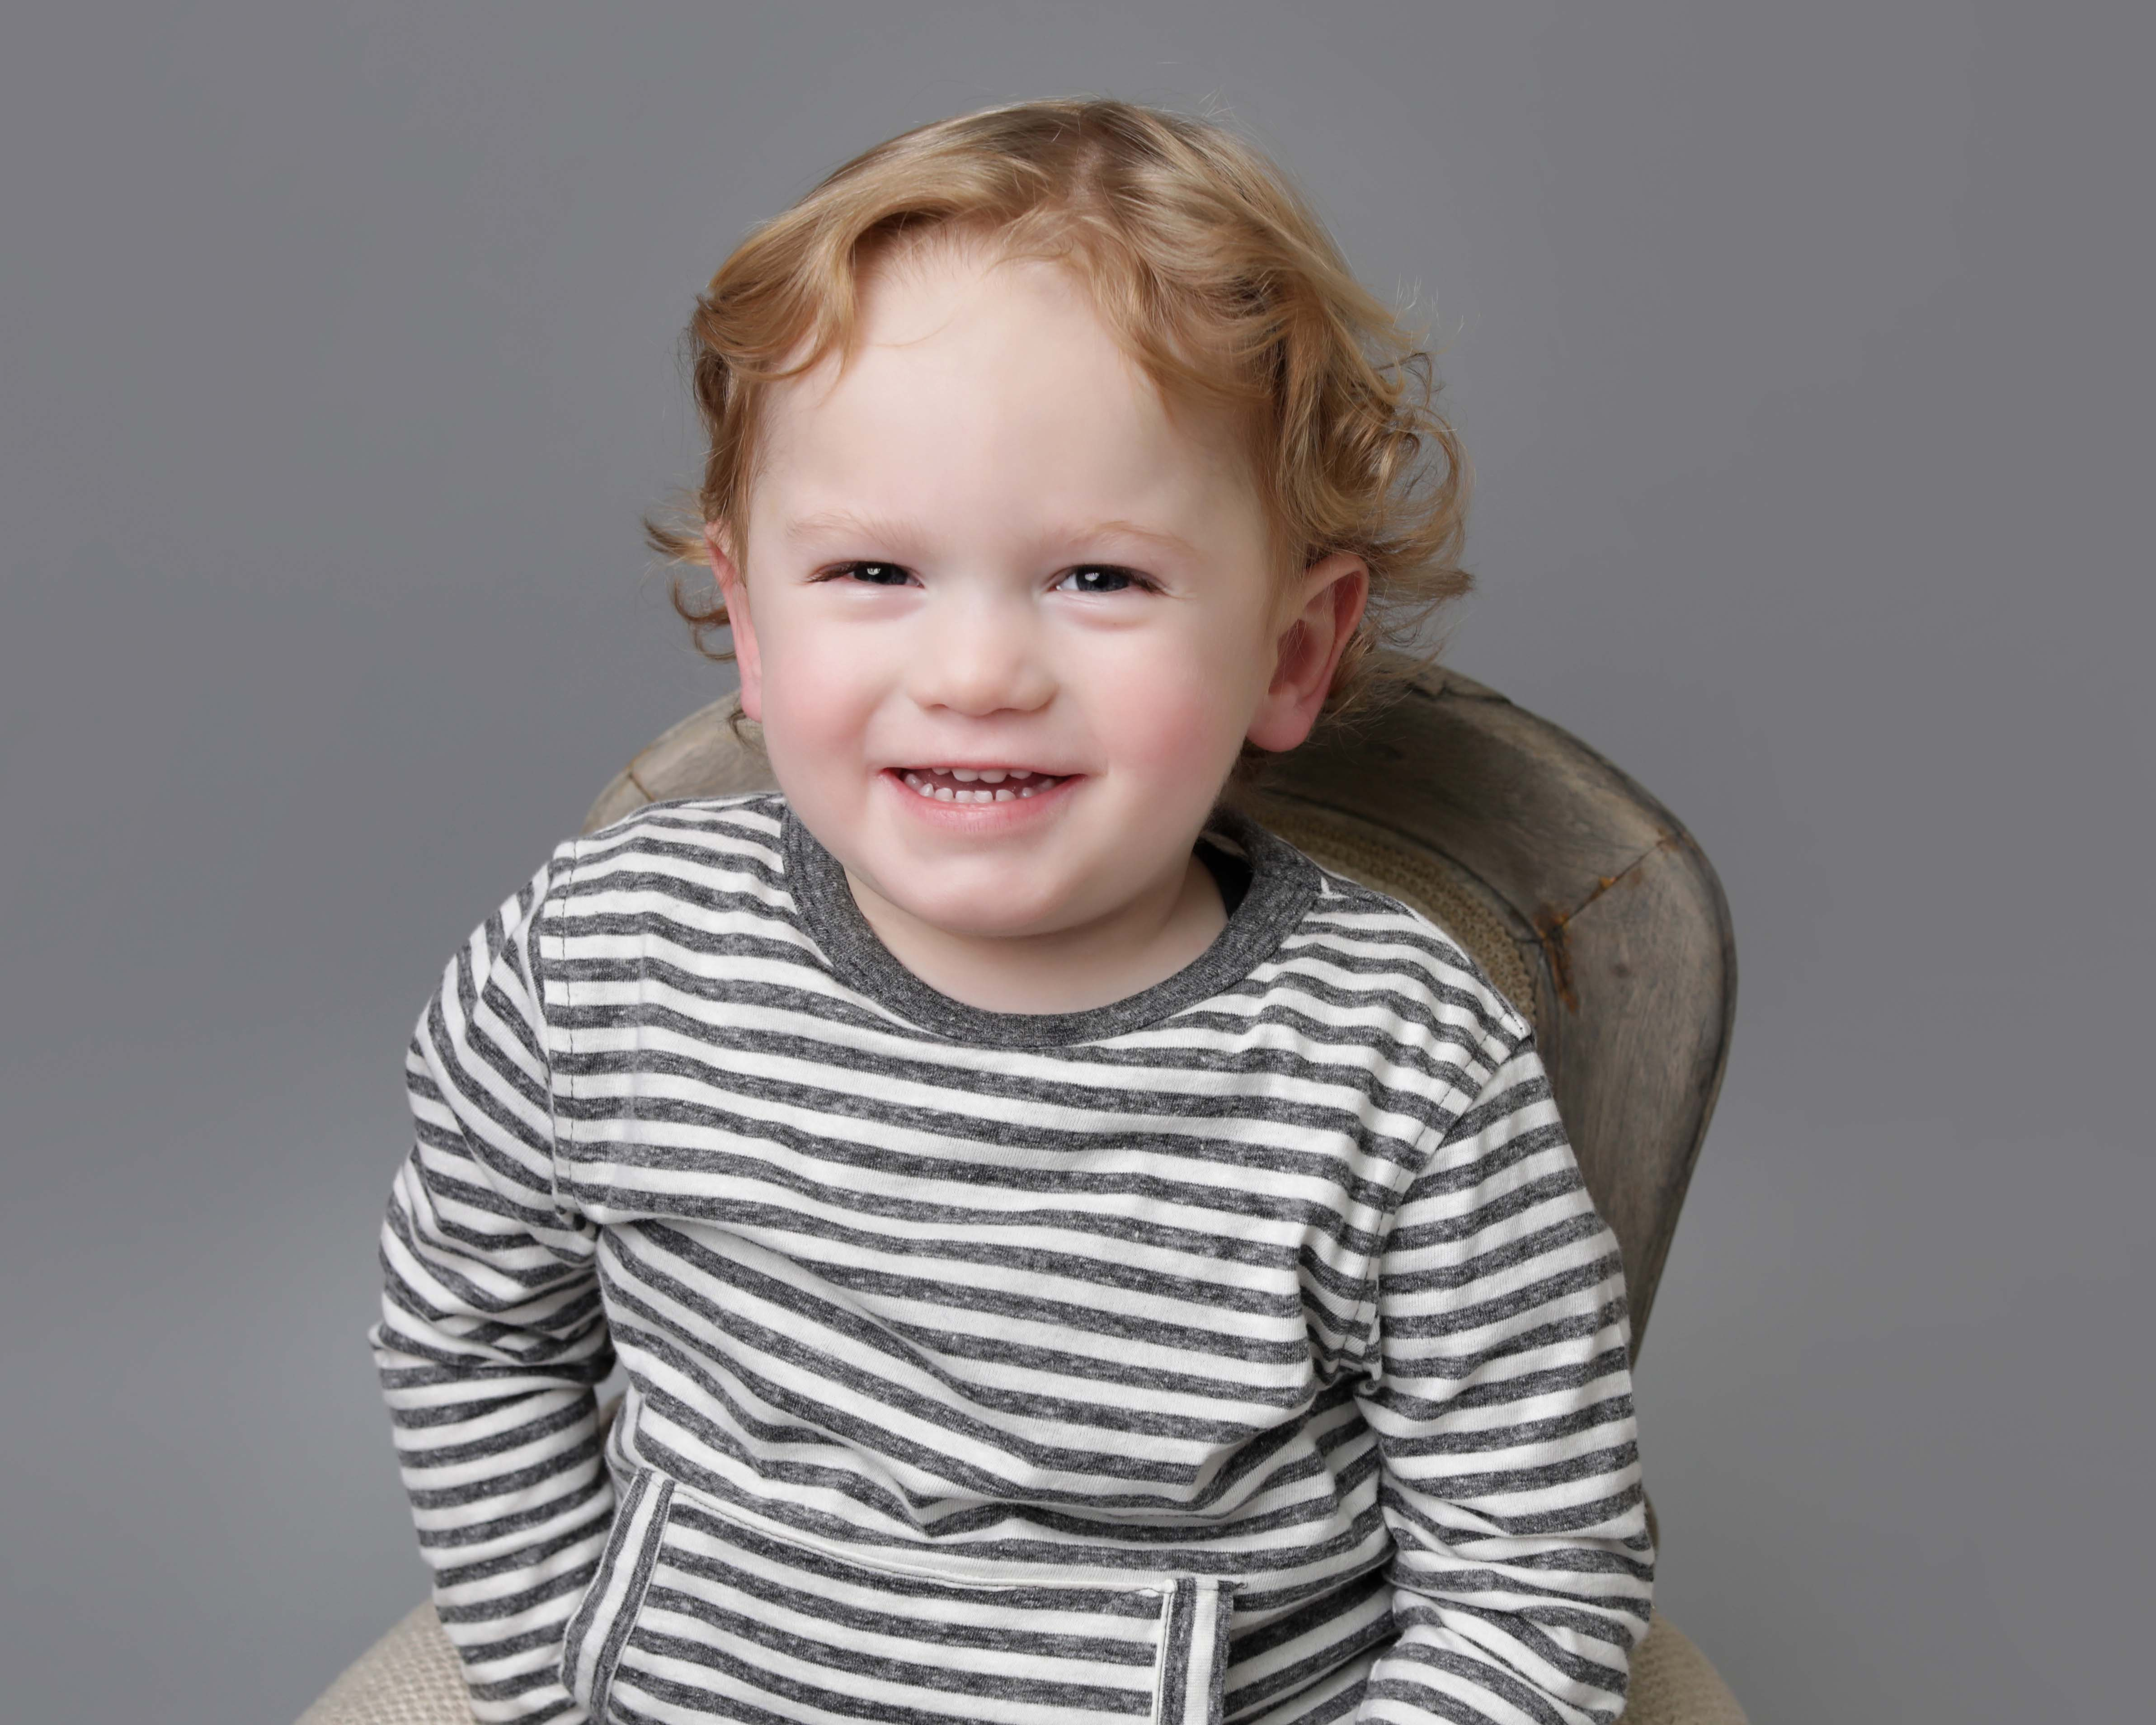 Charlie's story by Wirral Photographer.